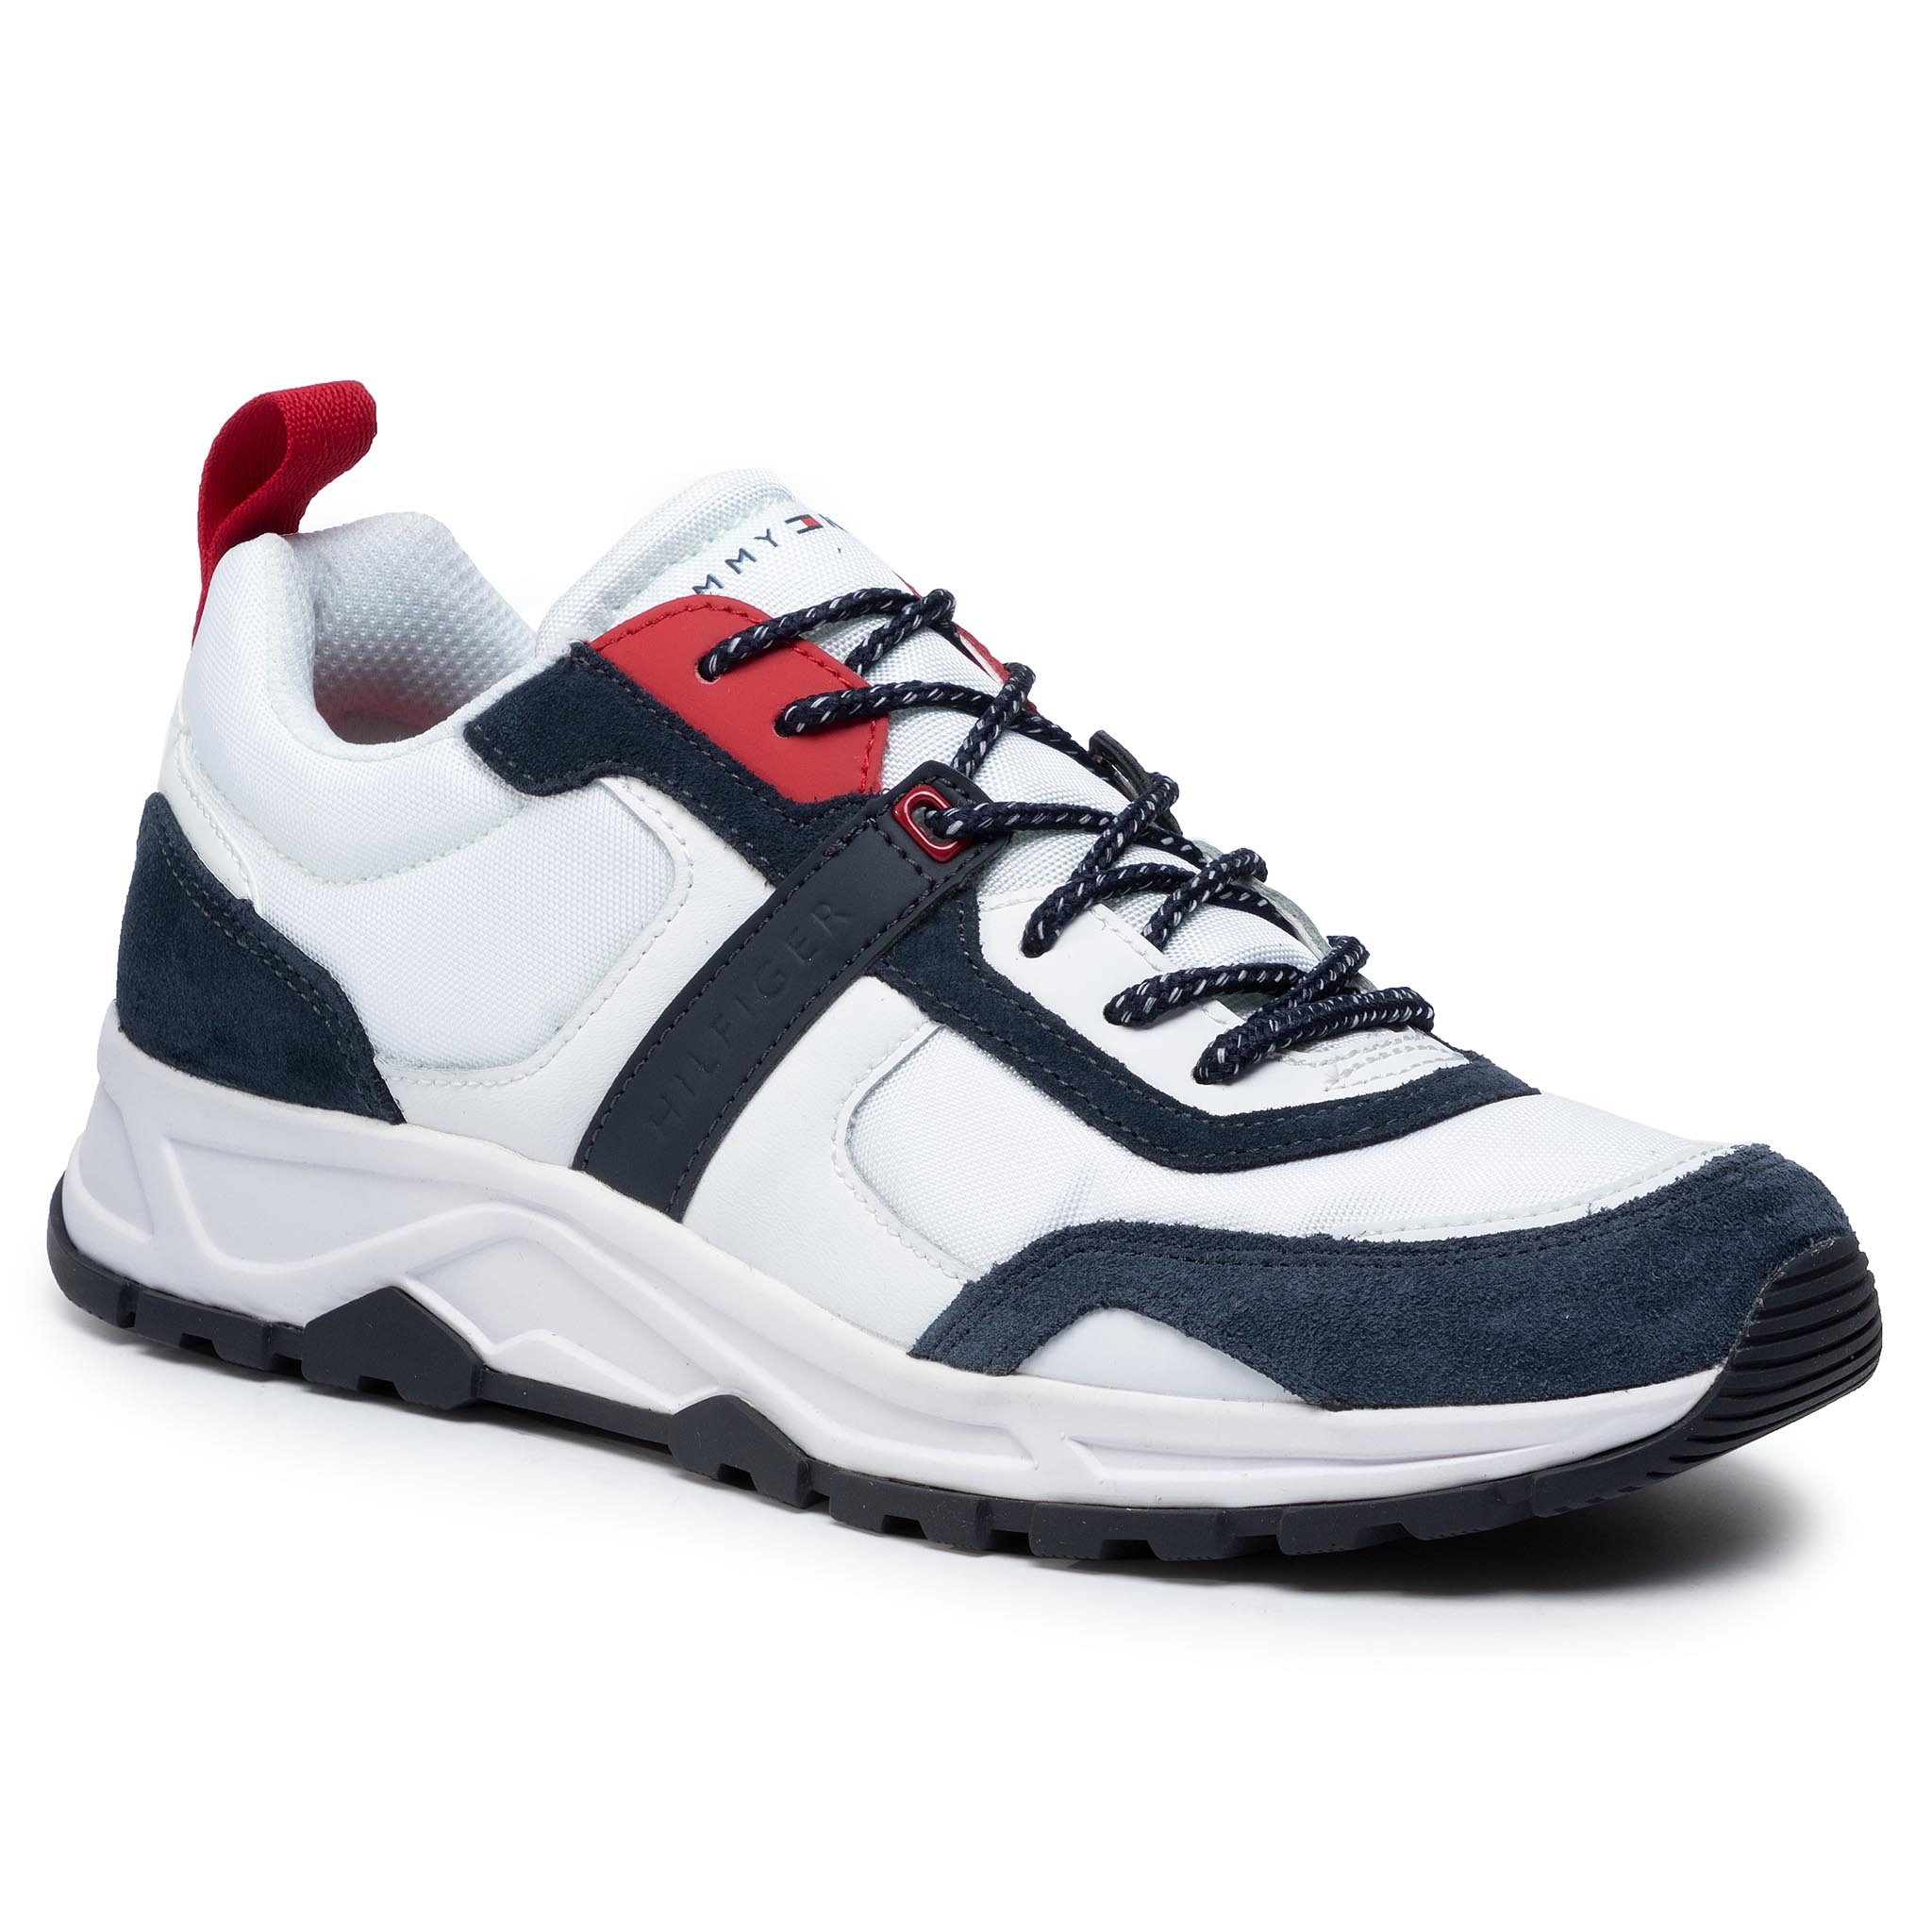 Sneakers TOMMY HILFIGER - Fashion Mix Sneaker FM0FM02389 White YBS